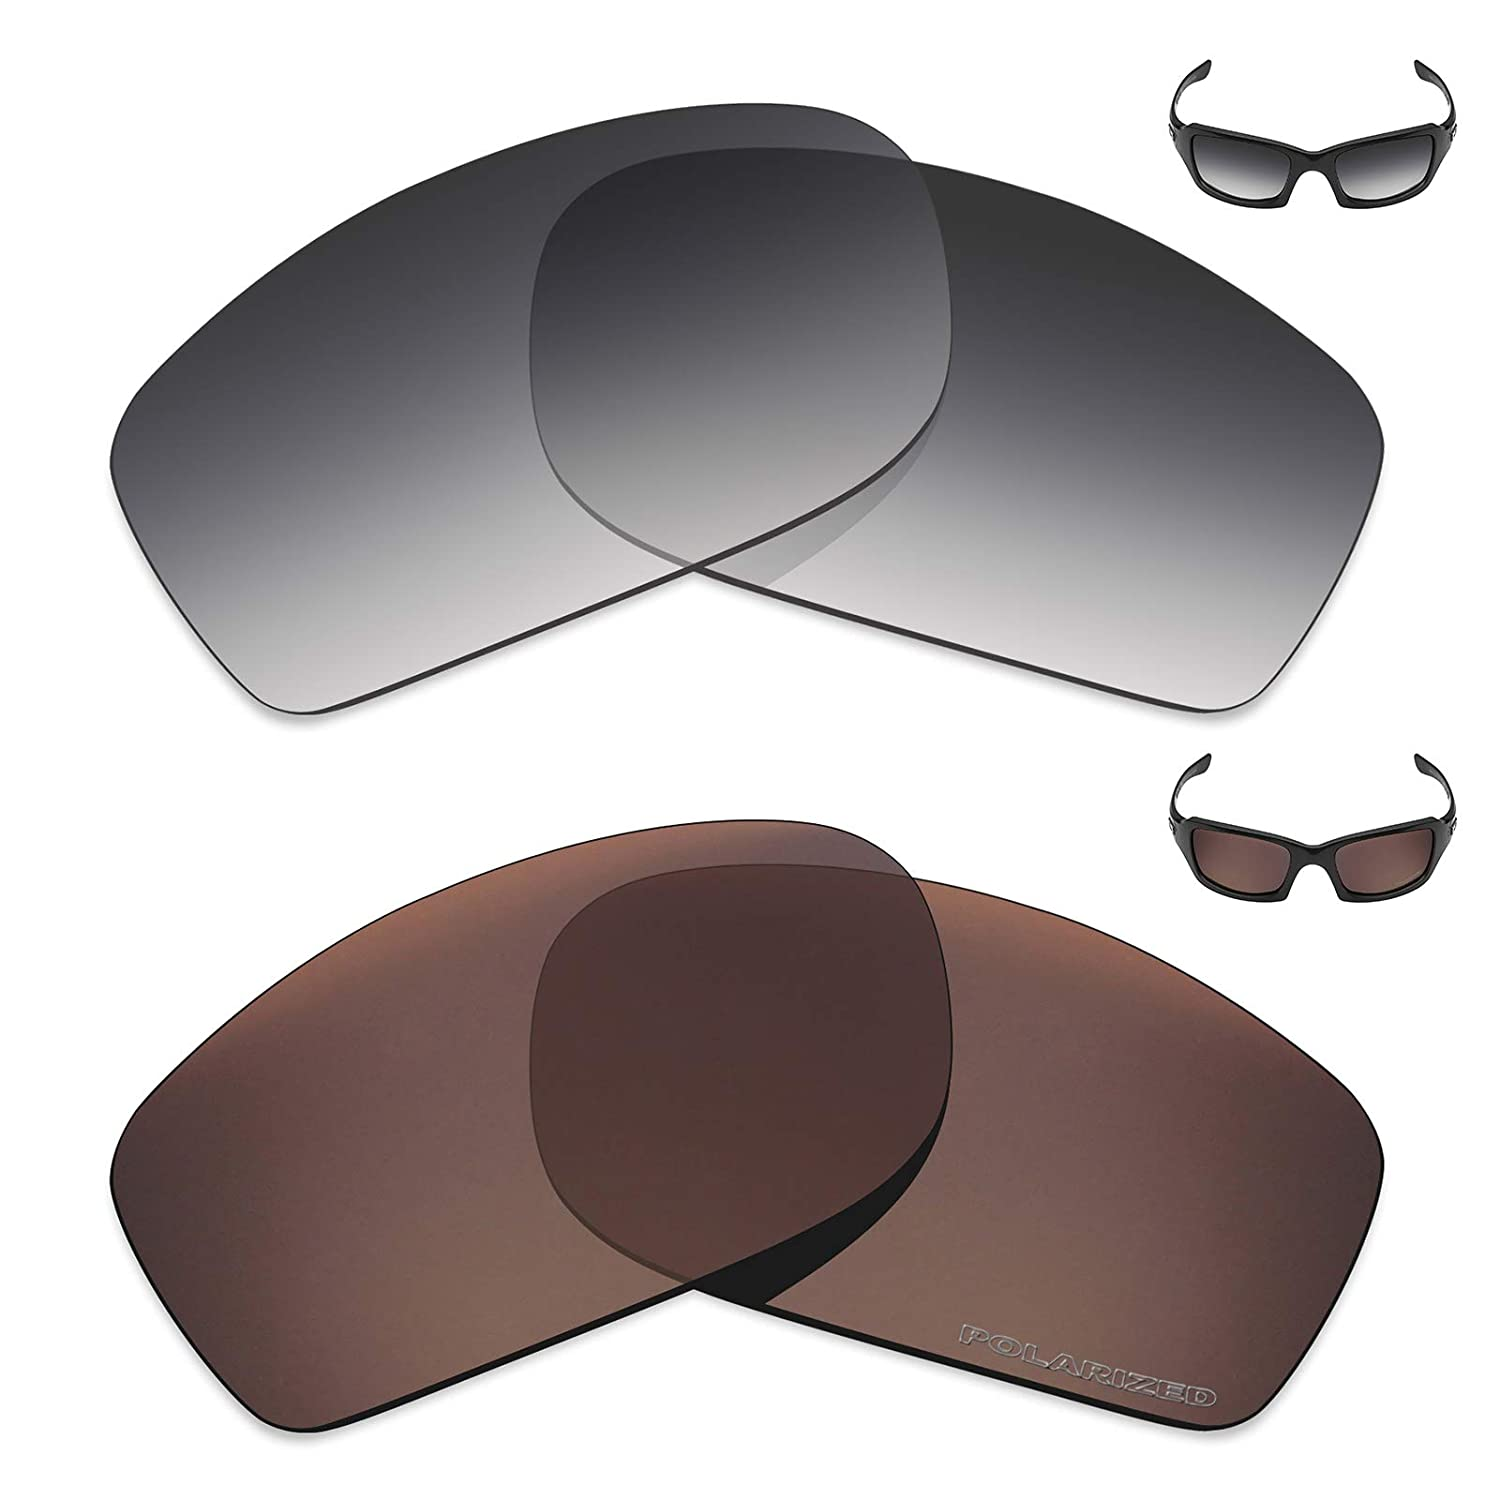 e02ec995bf Amazon.com  Mryok+ 2 Pair Polarized Replacement Lenses for Oakley Fives  Squared Sunglass - Grey Gradient Tint Bronze Brown  Sports   Outdoors